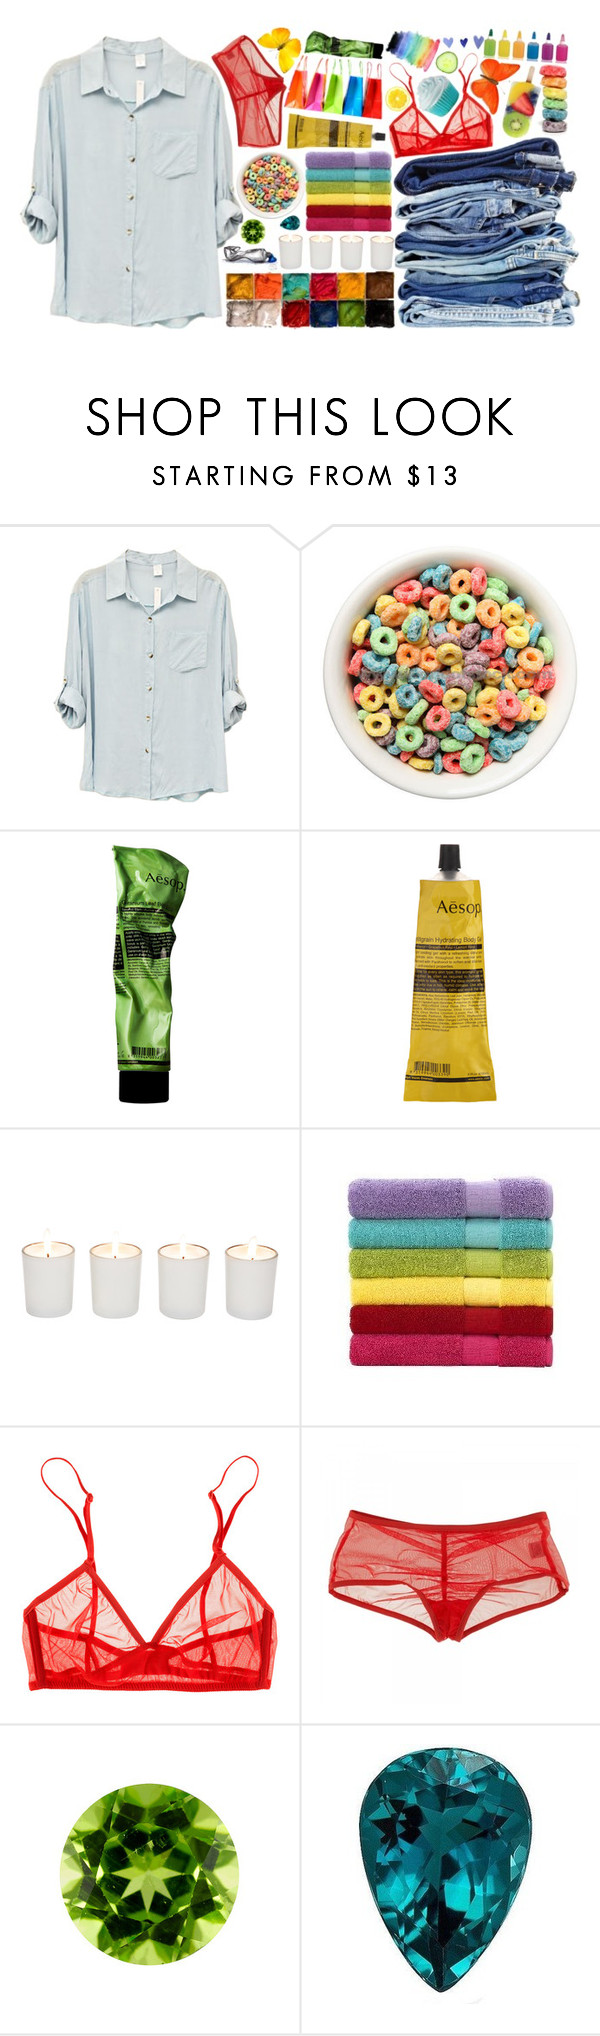 """""""Live life bright"""" by let-it-out ❤ liked on Polyvore featuring MAKE UP FOR EVER, Aesop, Witchery, Only Hearts and colorful"""